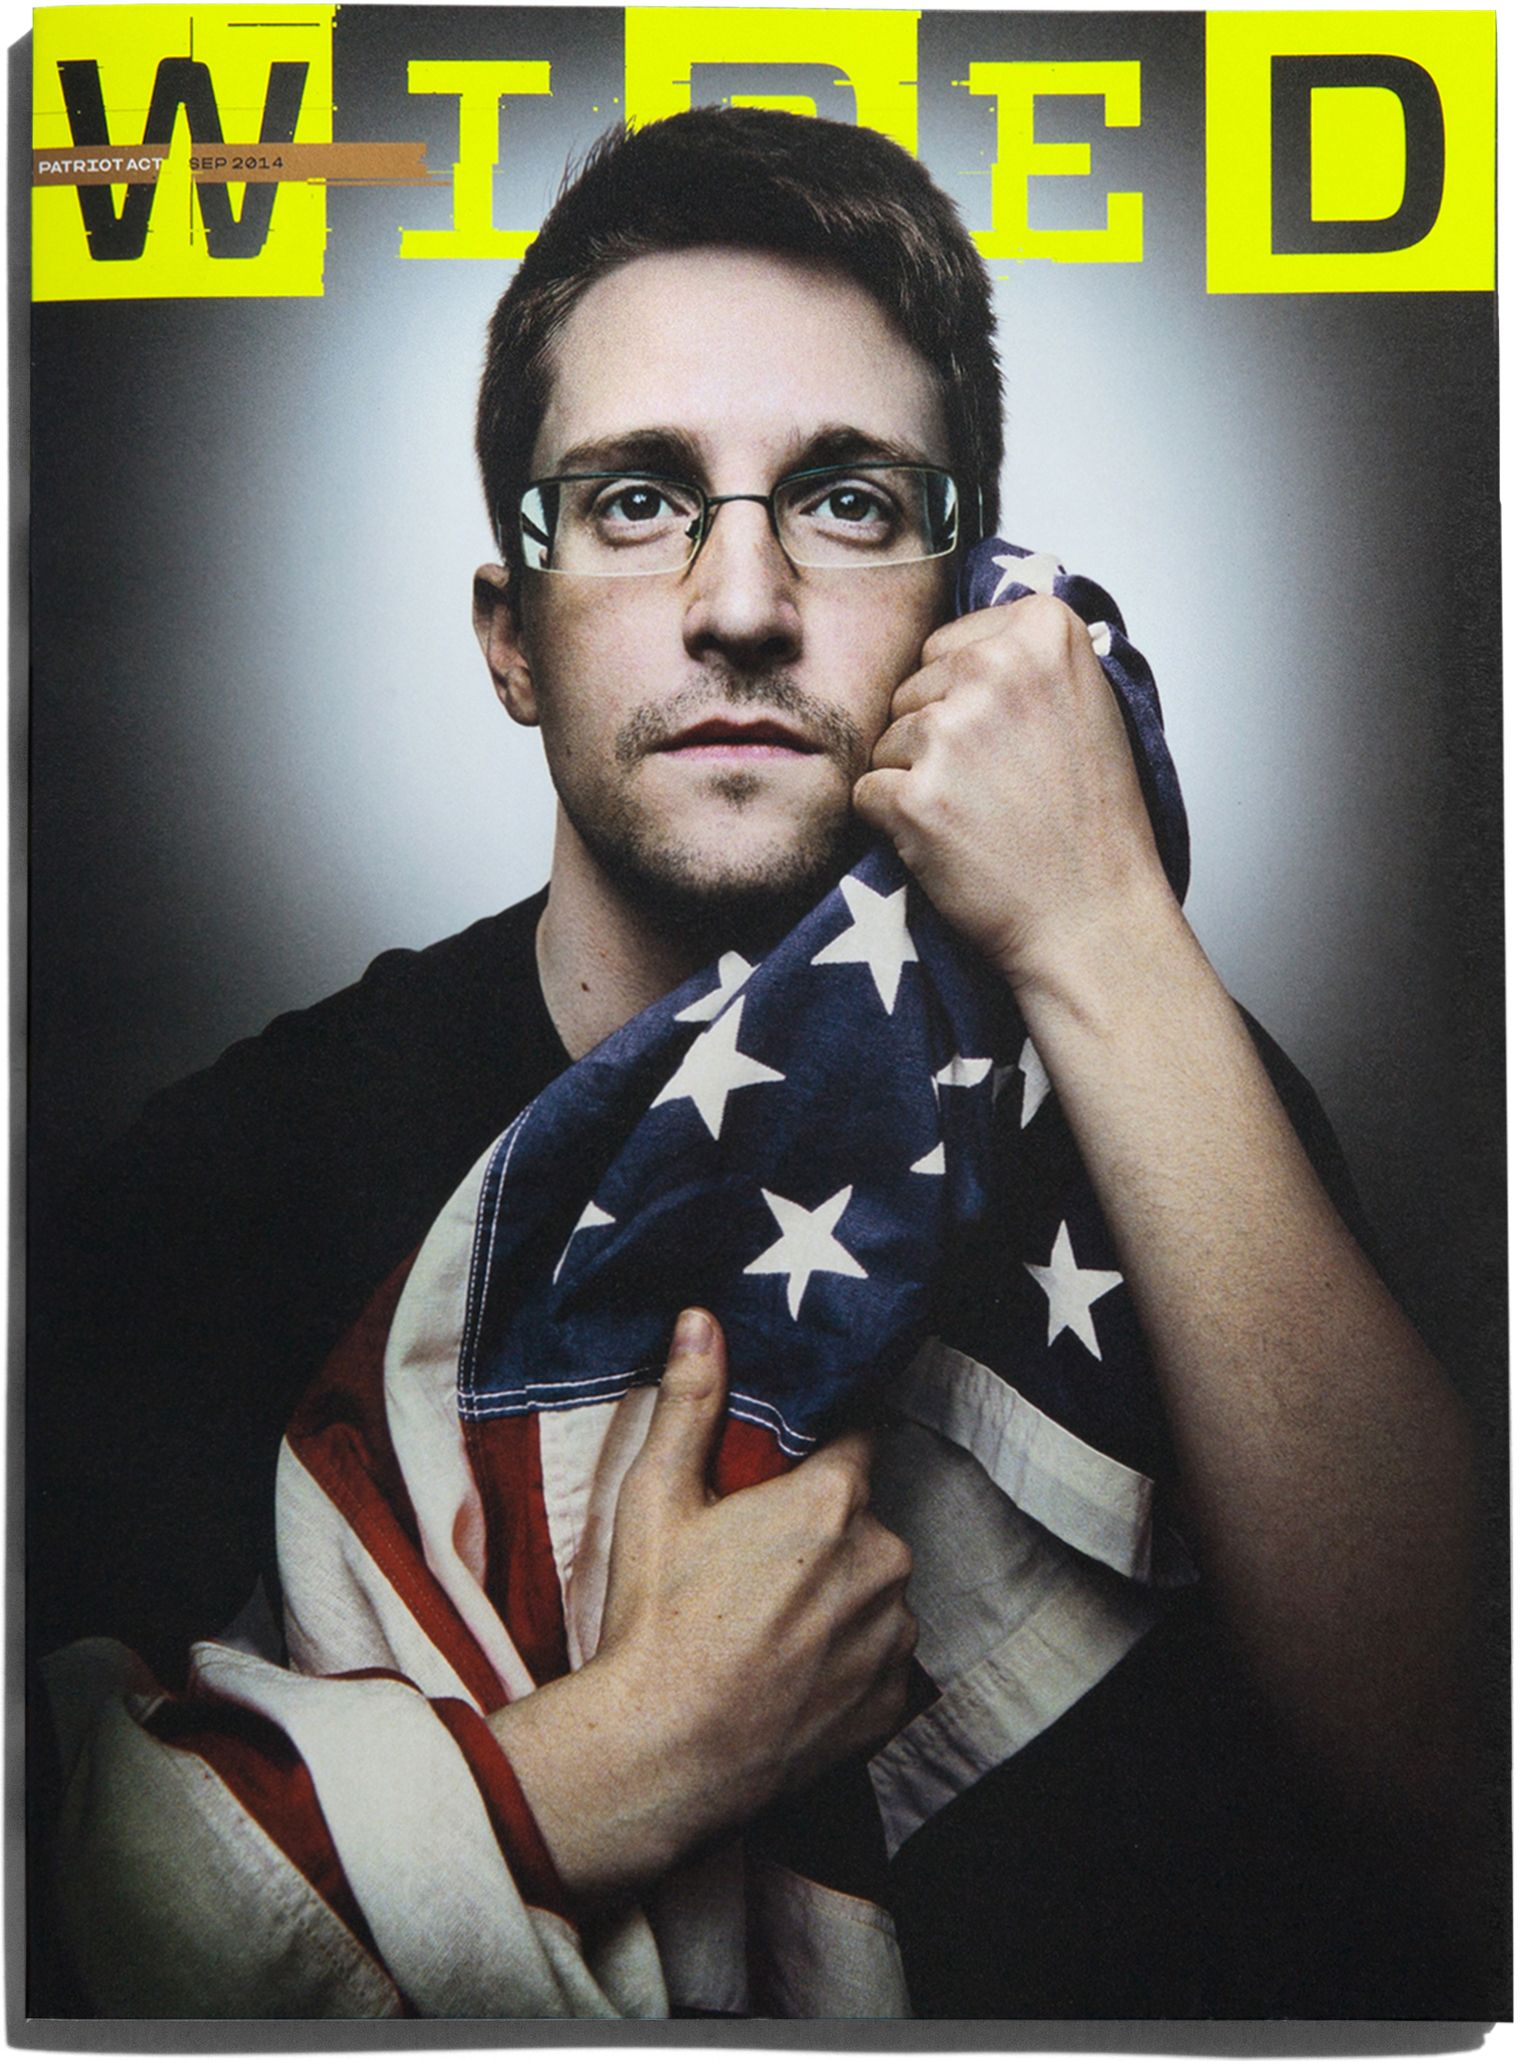 WIRED, Snowden